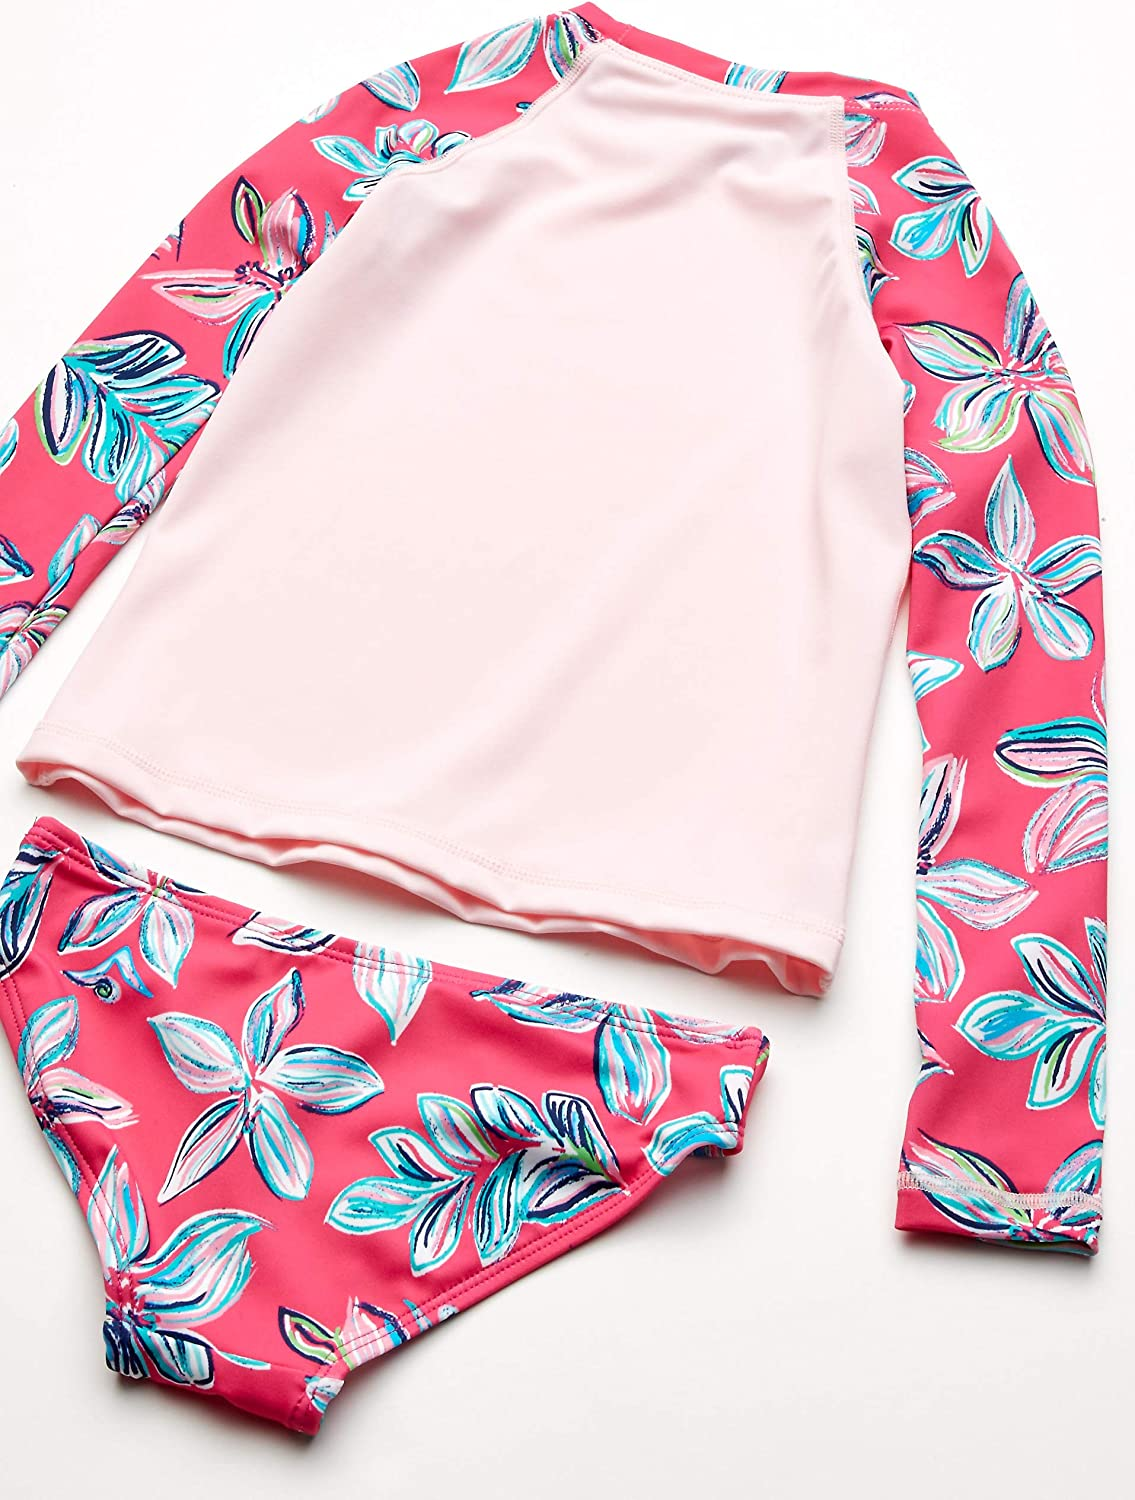 Kanu Surf Girls Long Sleeve Rashguard Two Piece Swim Set